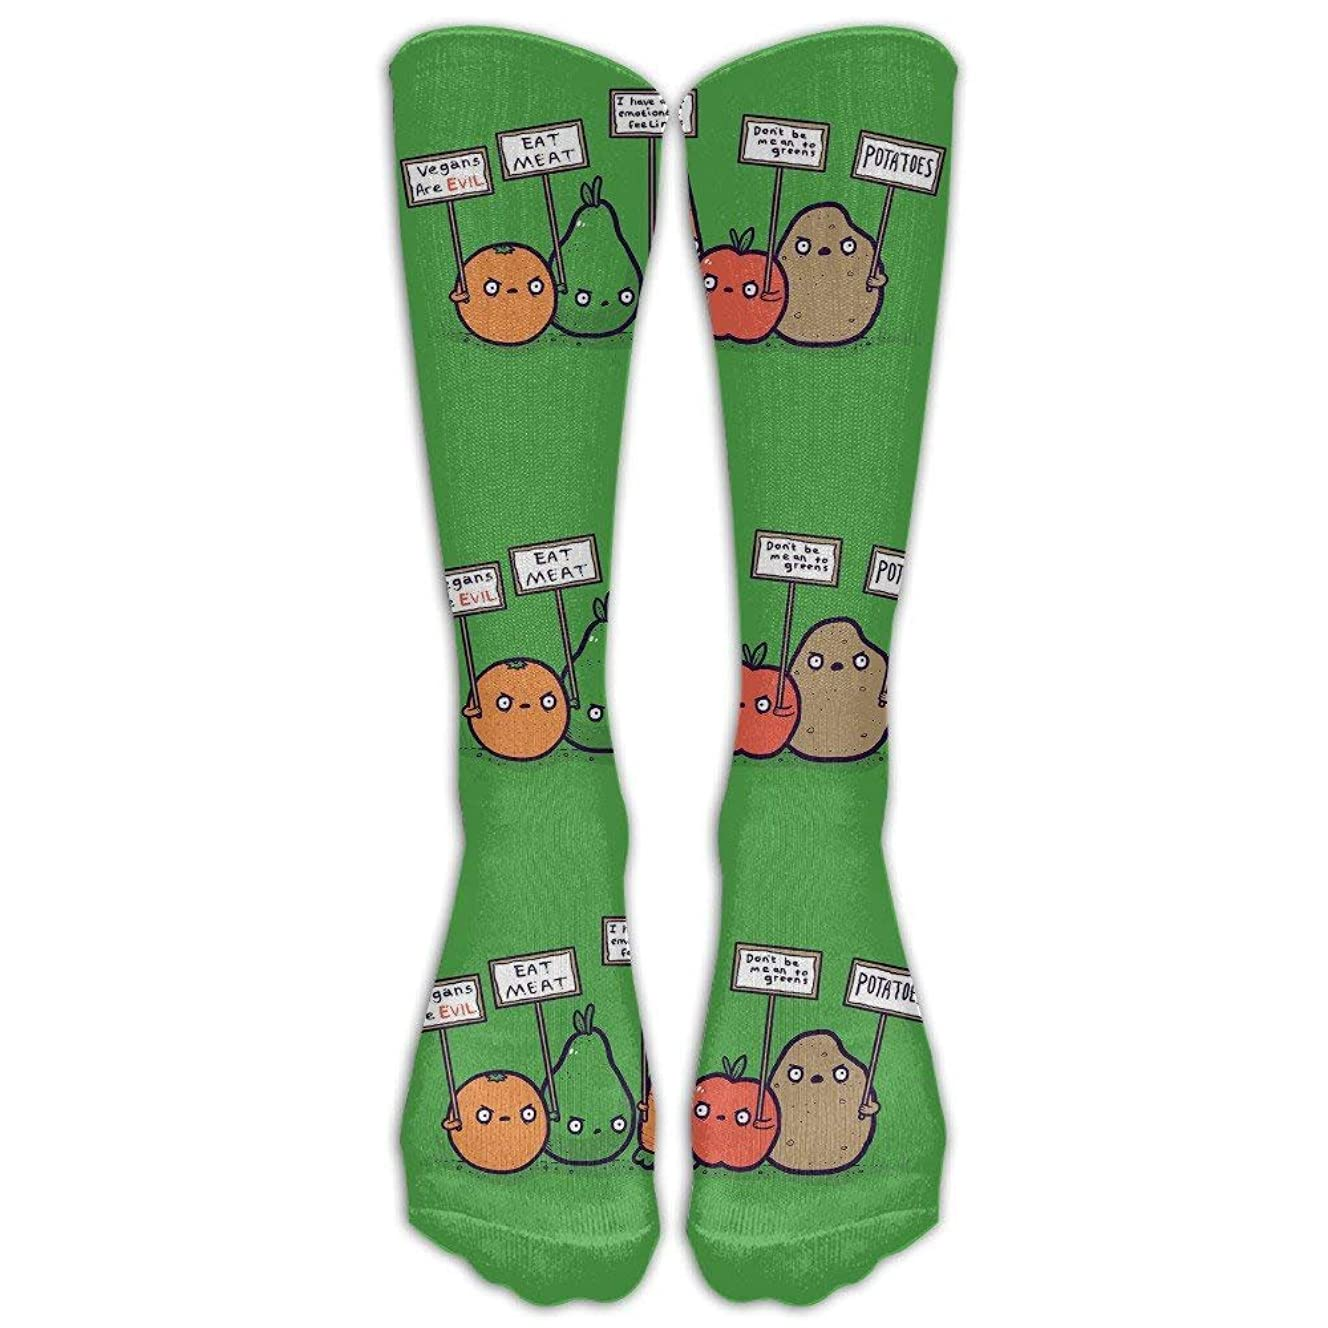 Protesting Vegans Funny Vegetables Protest Signs Against Vegans Knee High Graduated Compression Socks For Women And Men - Best Medical, Nursing, Travel & Flight Socks - Running & Fitness